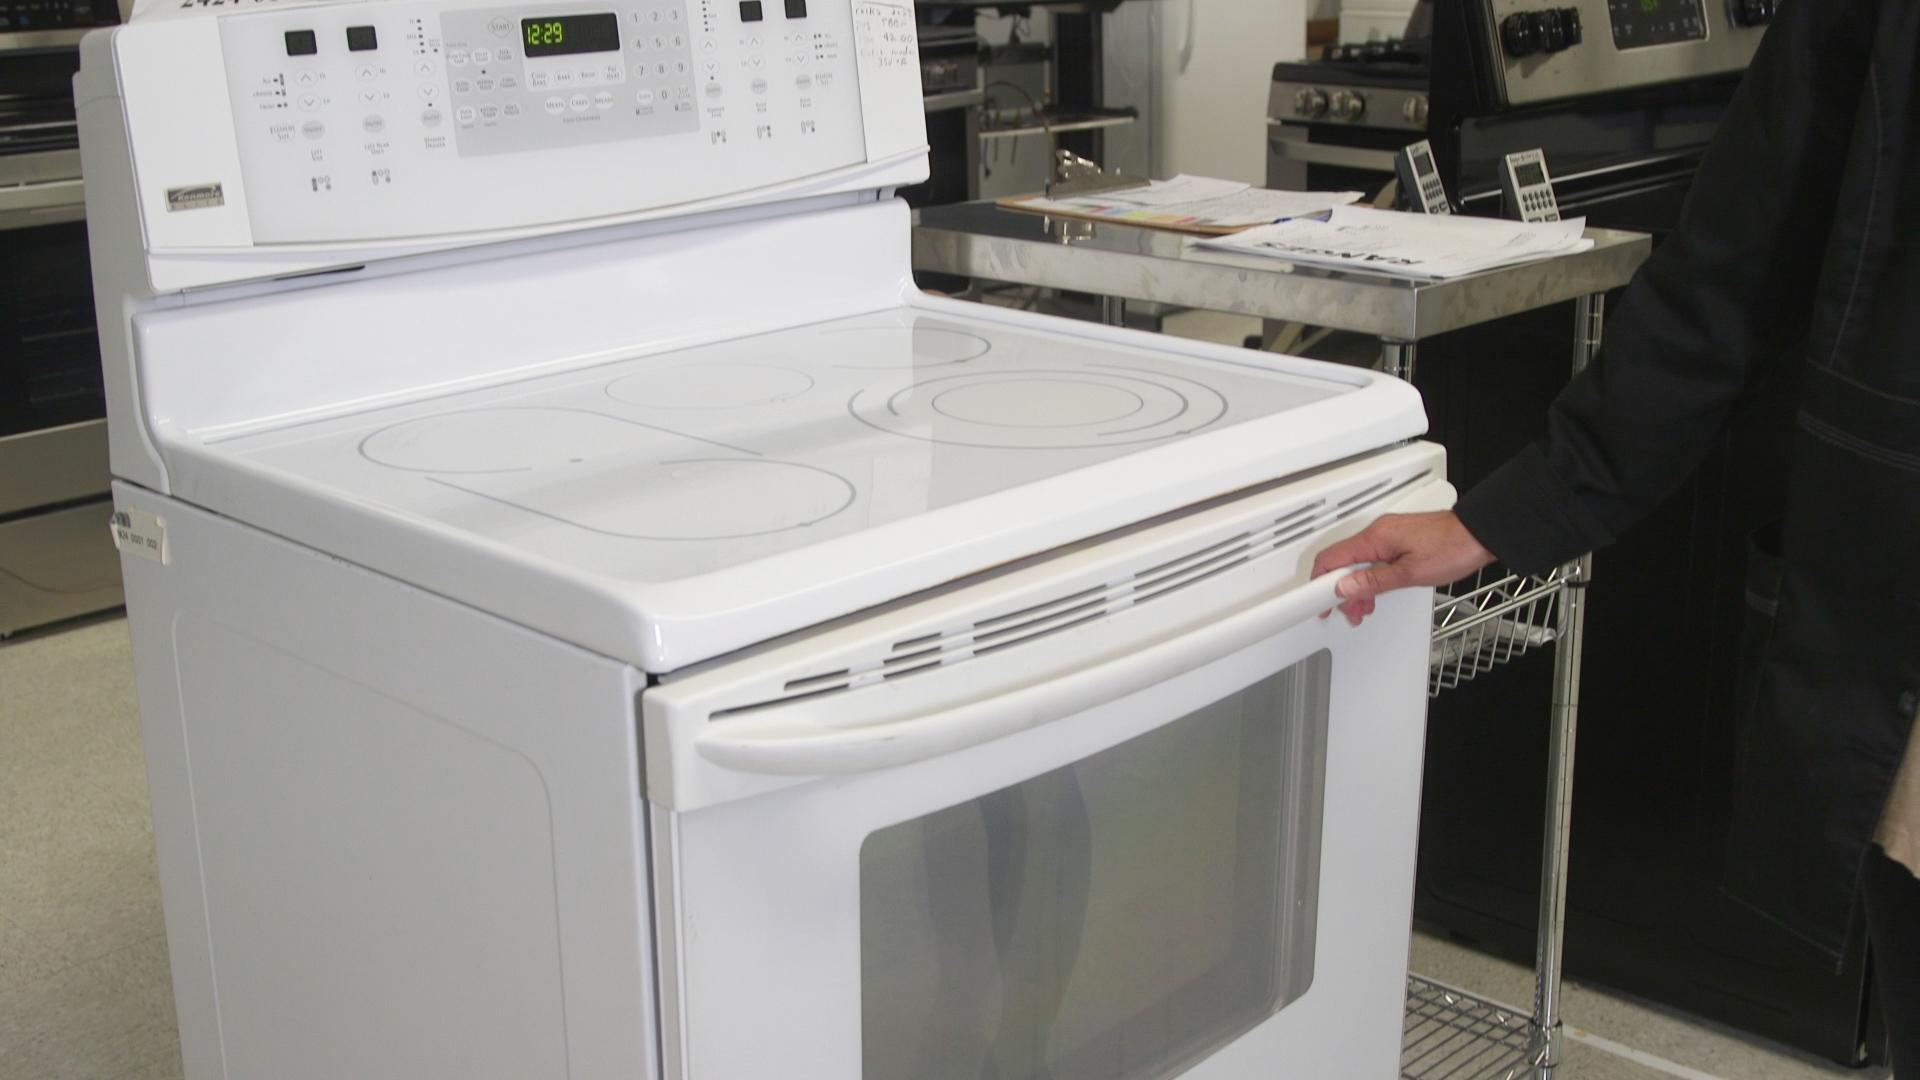 The best spots to keep foods fresher in the fridge why consumer reports keeps an old oven in its labs rubansaba